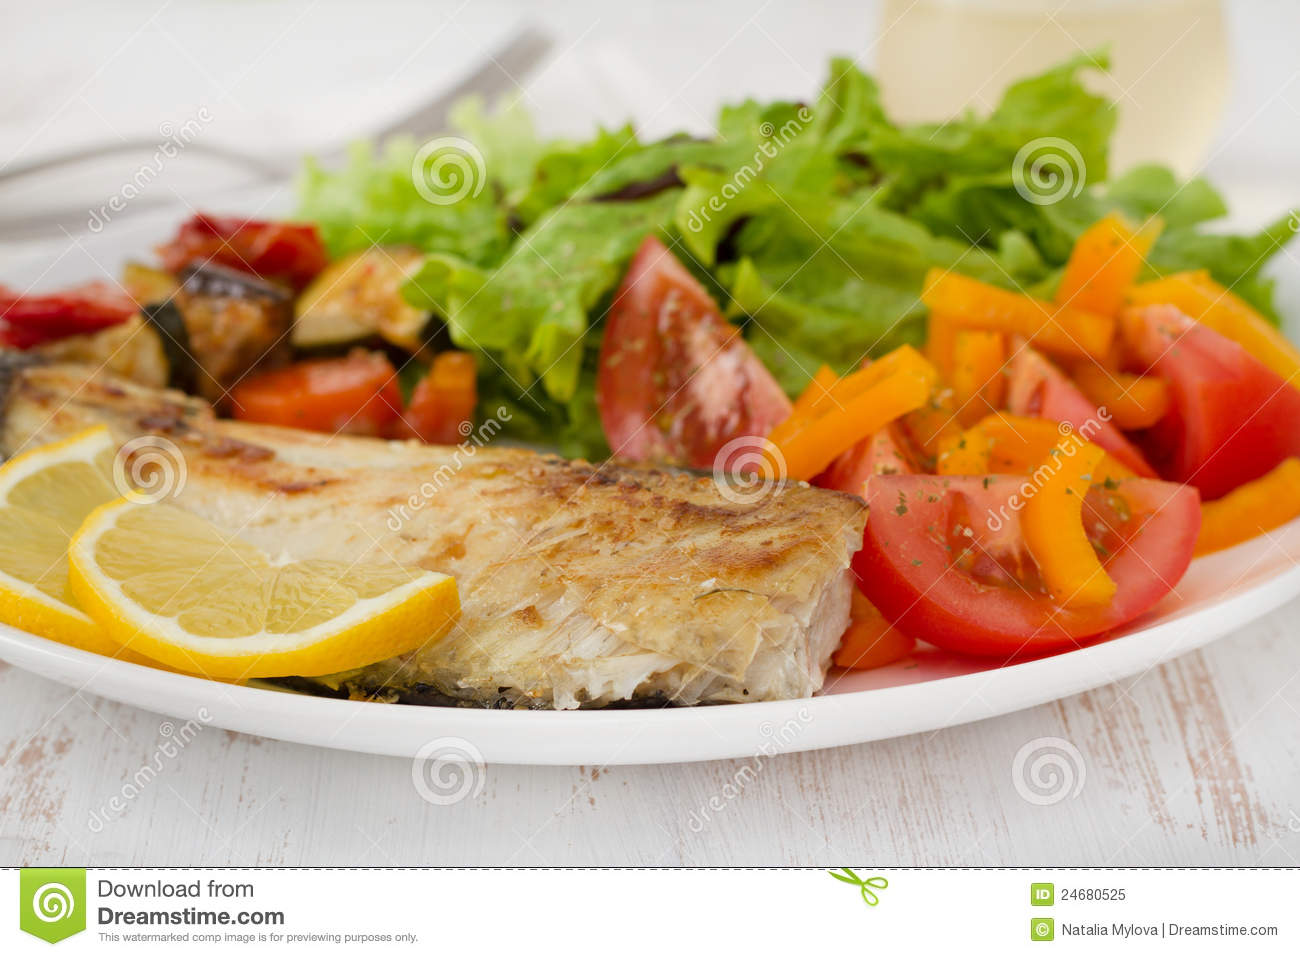 Fried fish with vegetables royalty free stock photo for What vegetables go with fish